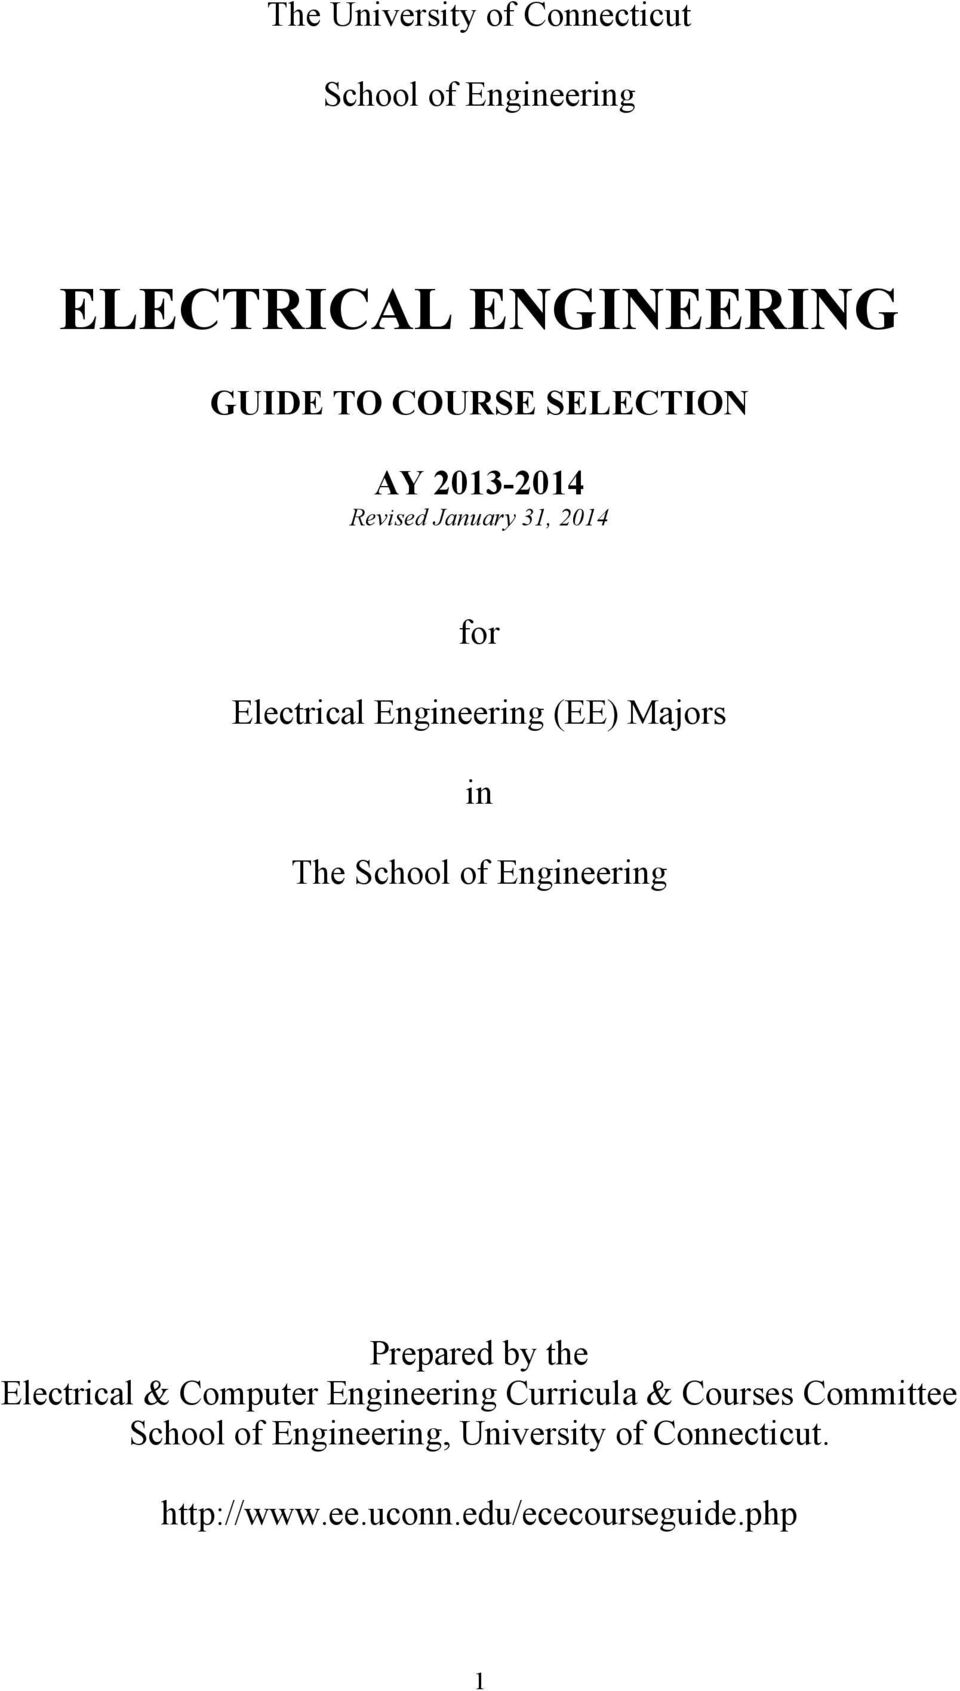 School of Engineering Prepared by the Electrical & Computer Engineering Curricula & Courses